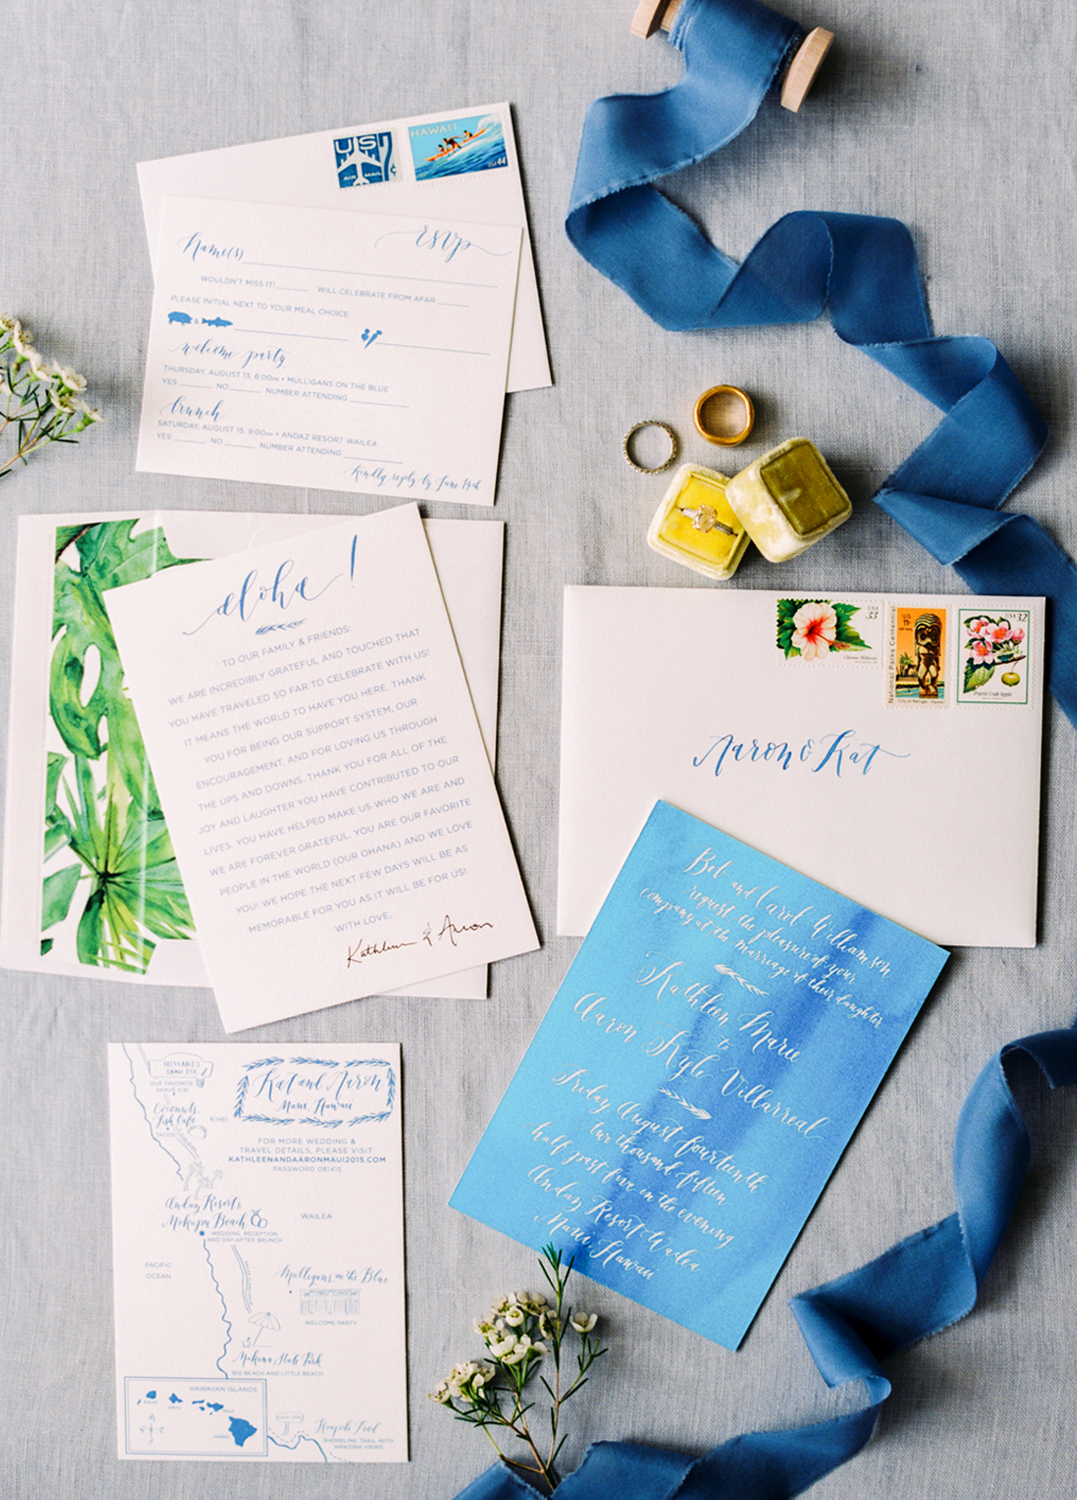 la Happy Calligraphy - Hawaiian Wedding